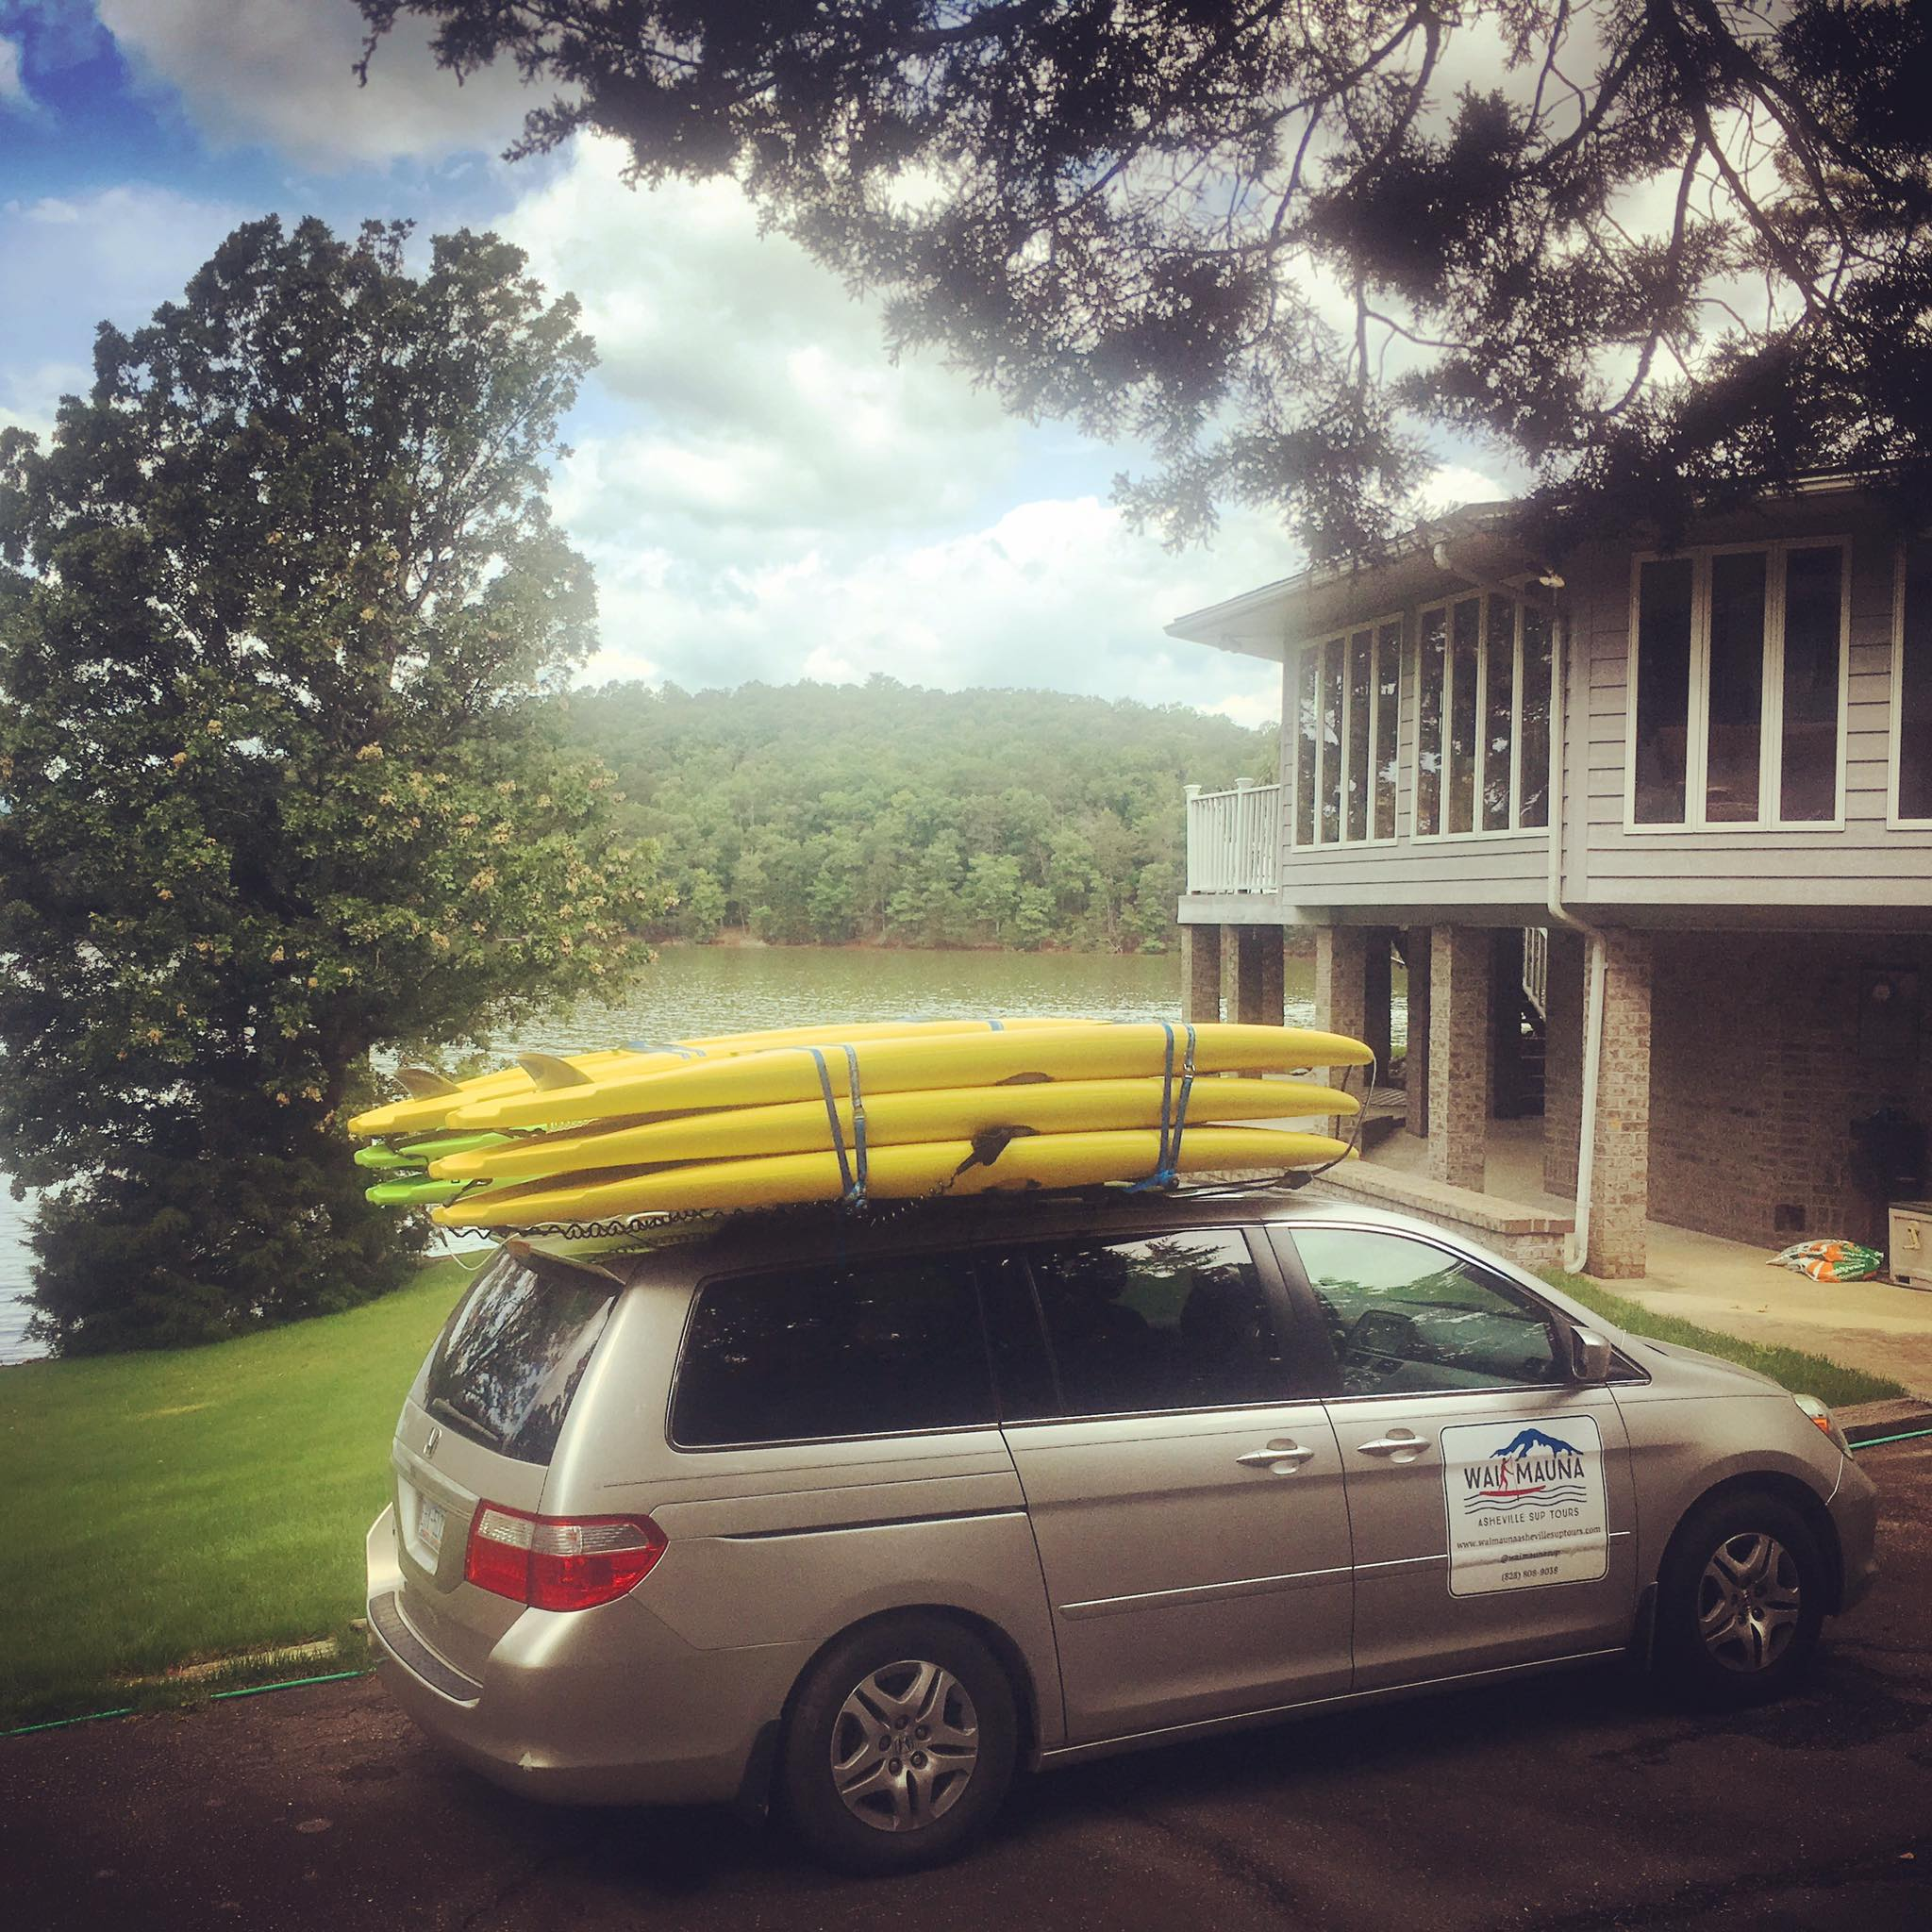 Paddleboard Delivery.jpg